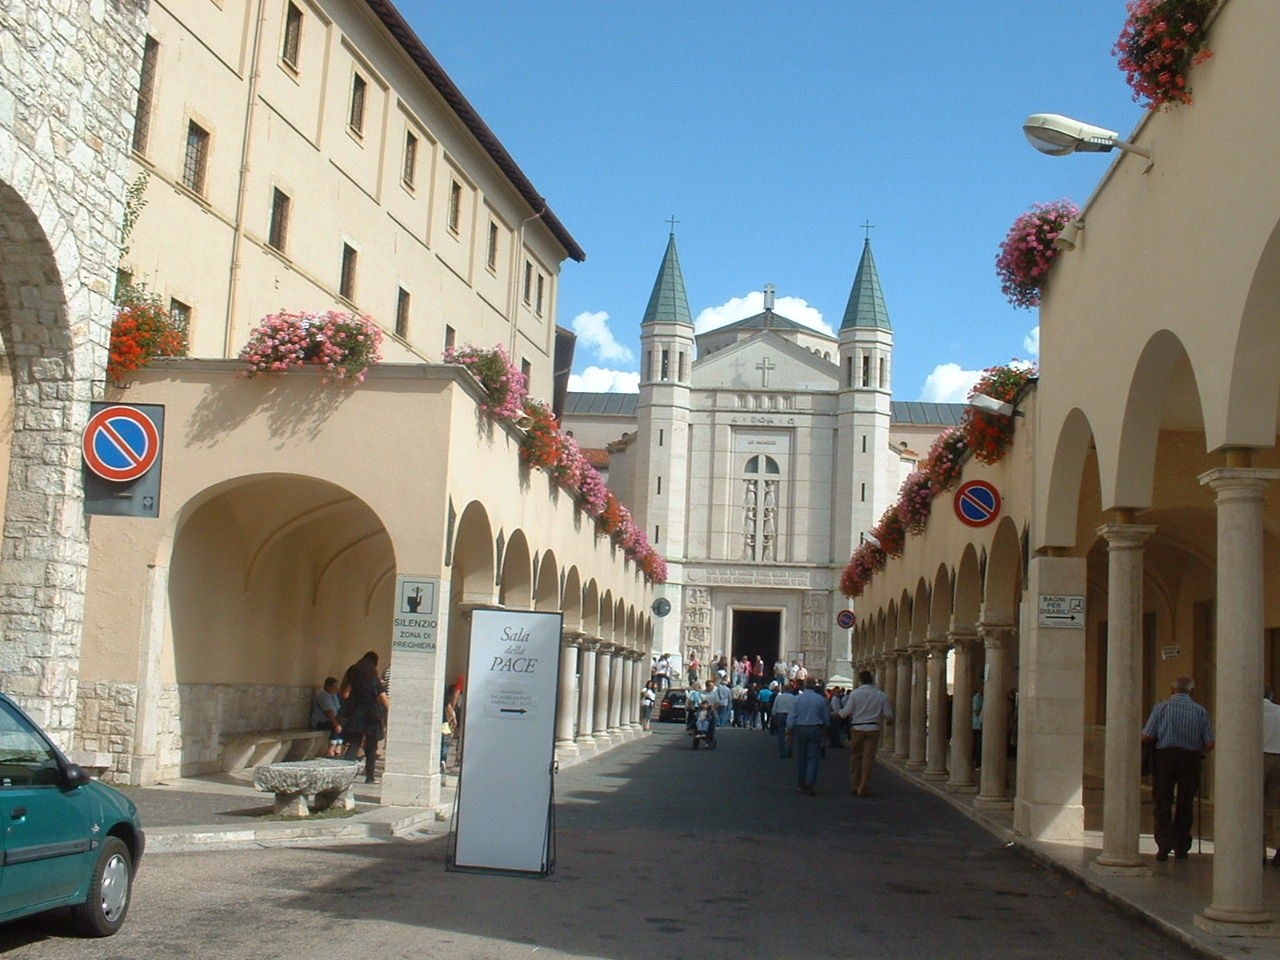 You are browsing images from the article: Umbria - Cascia (PG)